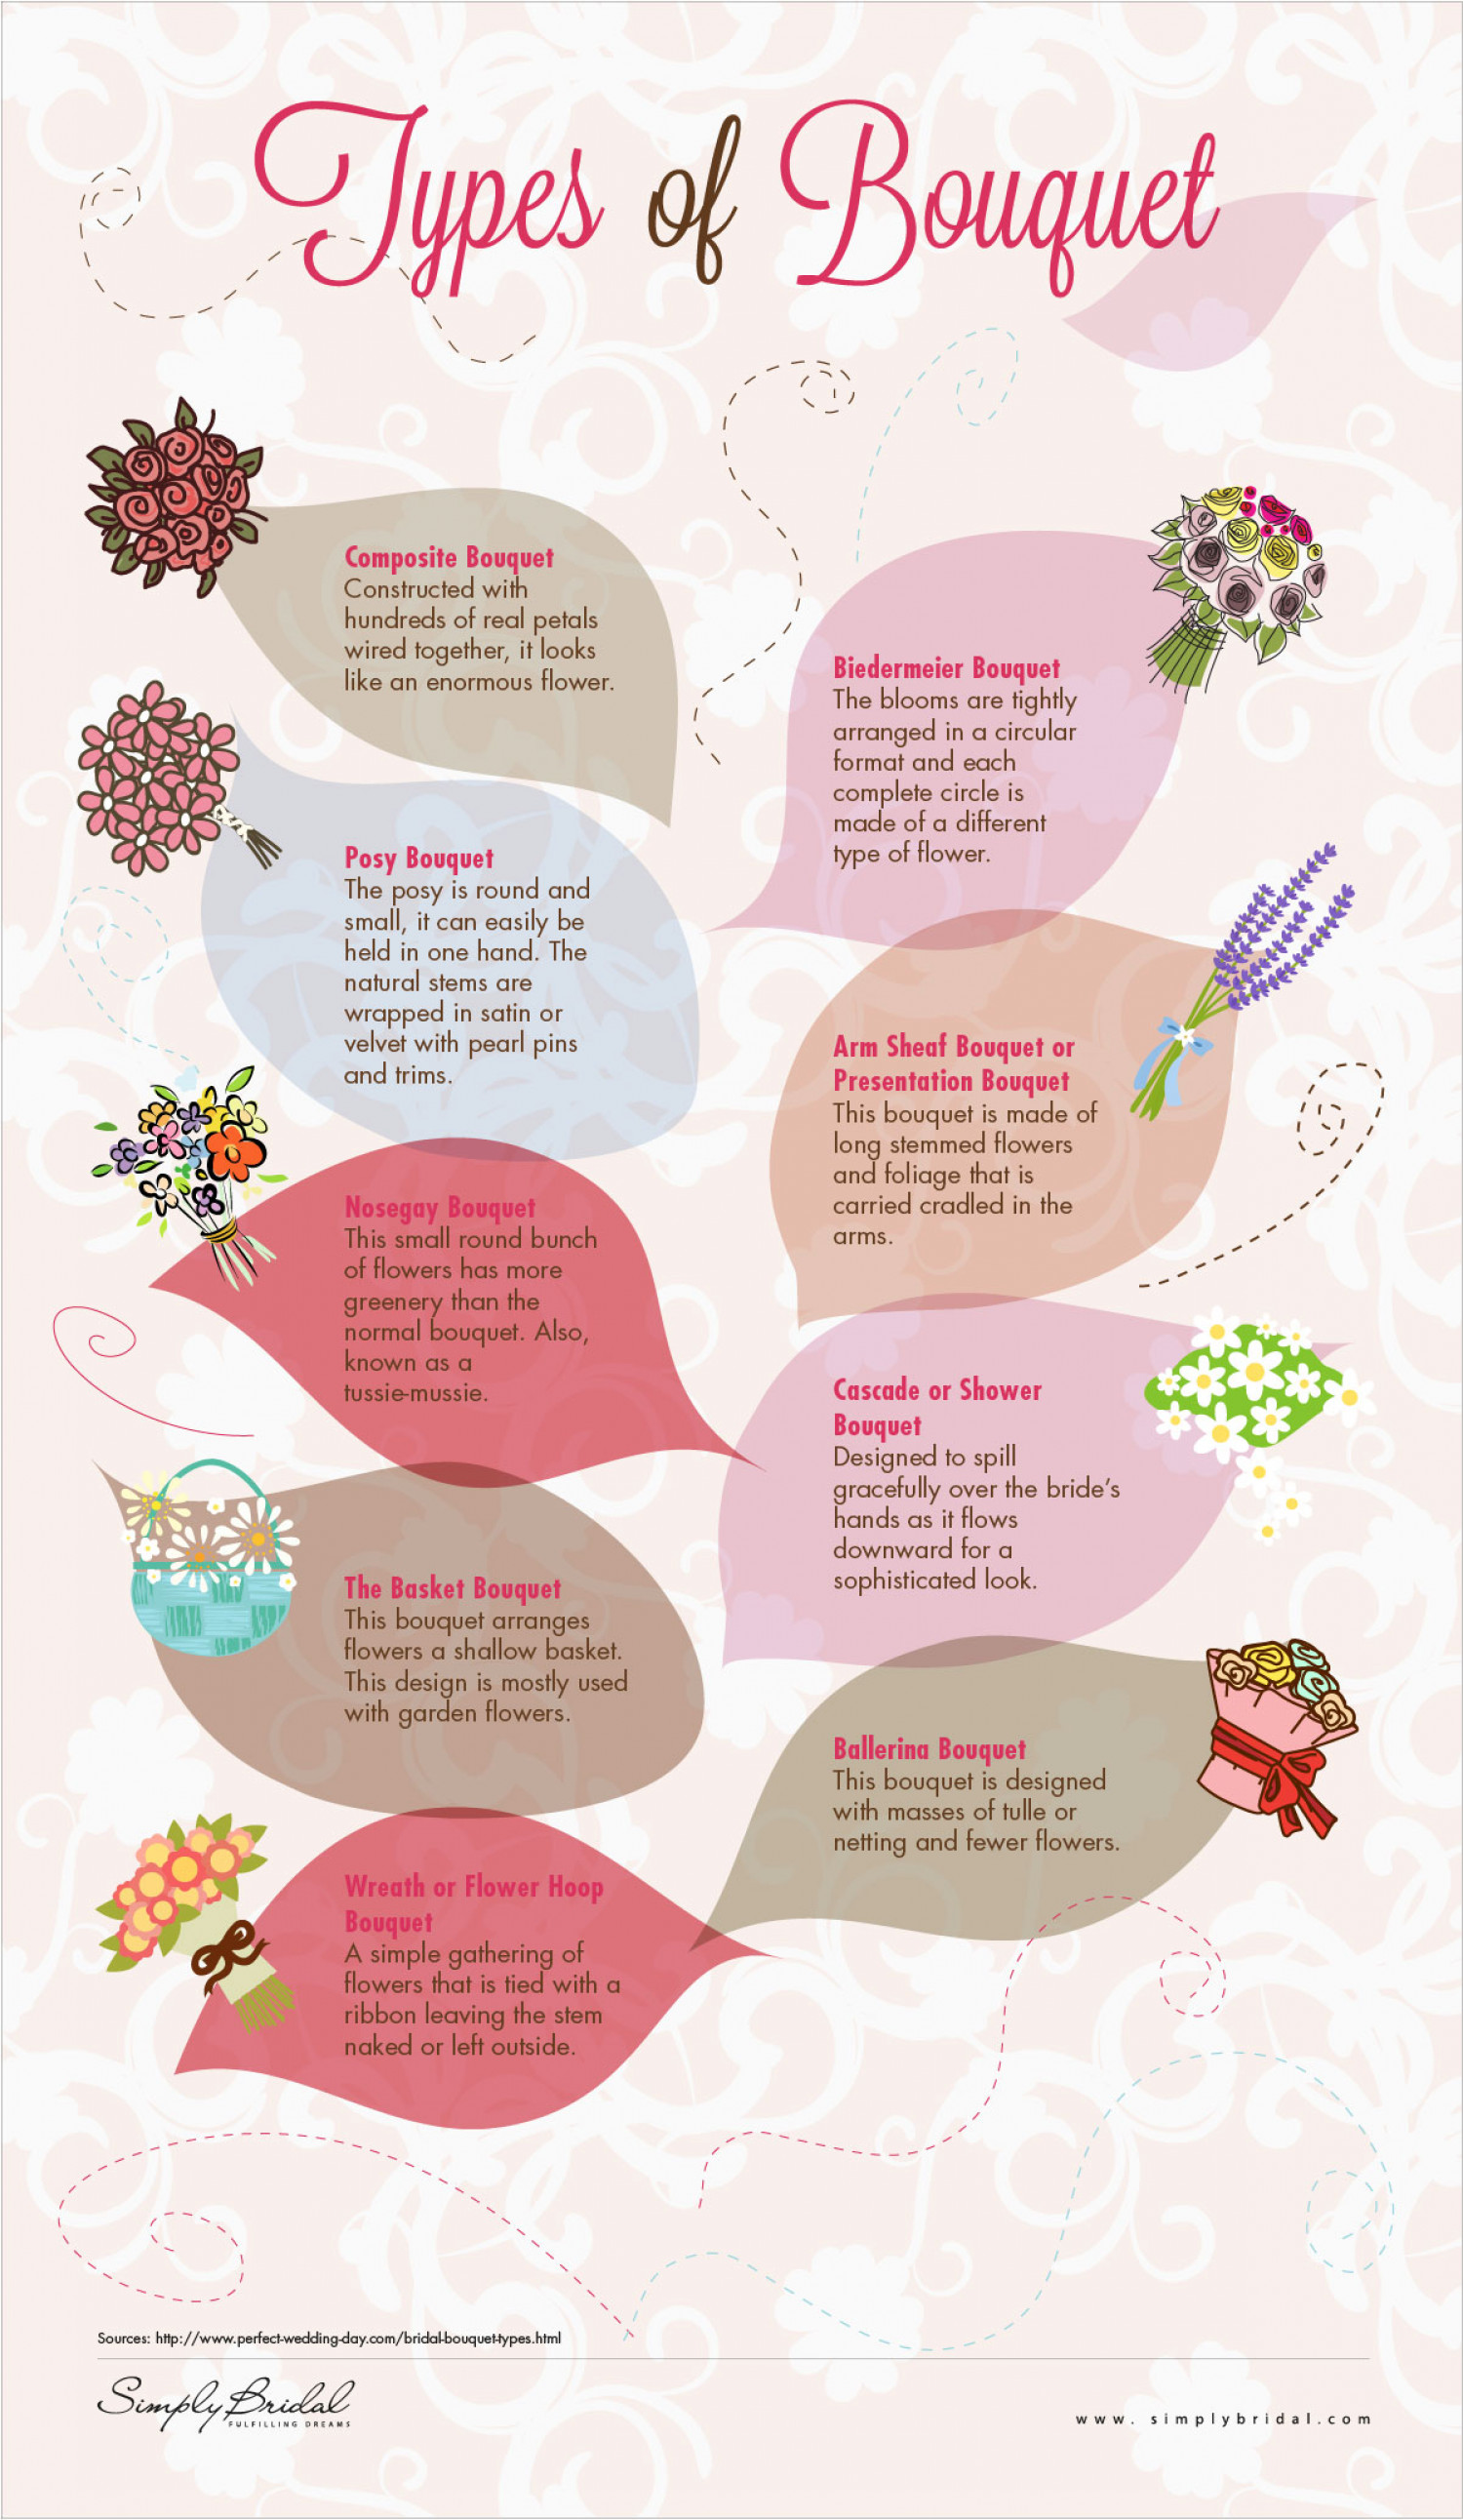 Types of Bouquet Infographic